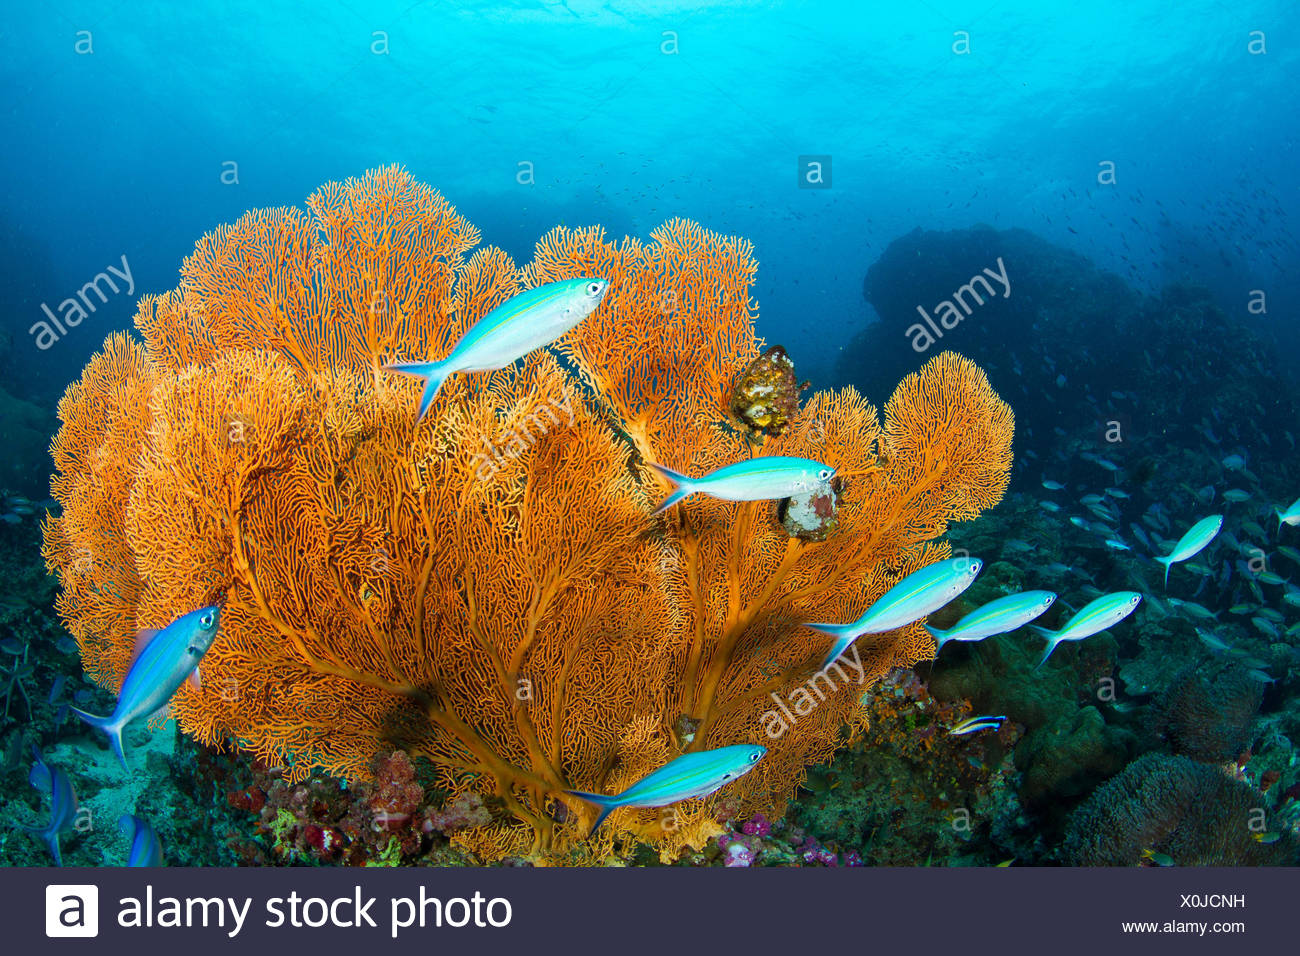 Gorgonian seafans and fuseliers on a deep coral reef. - Stock Image